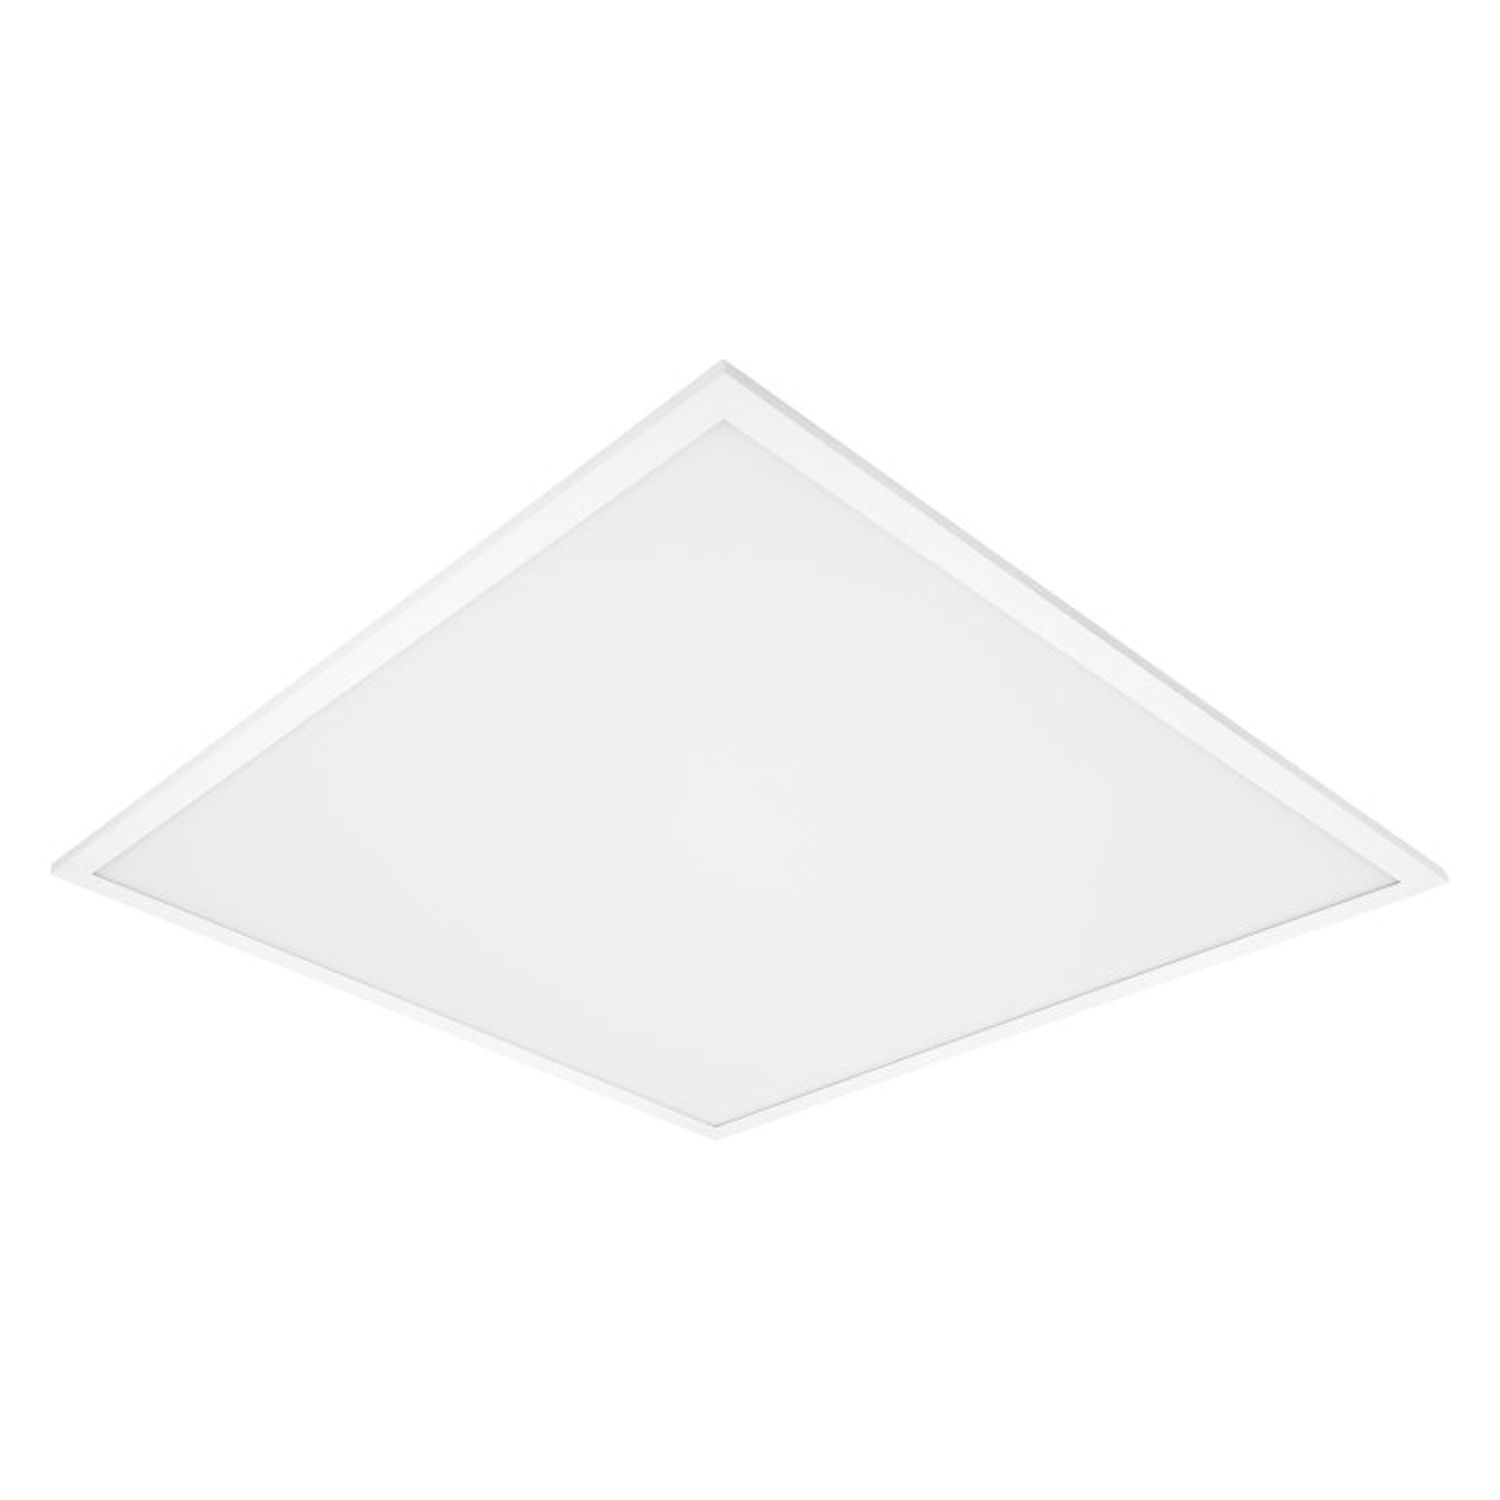 Ledvance LED Panel Performance 62.5x62.5cm 4000K 30W | Cool White